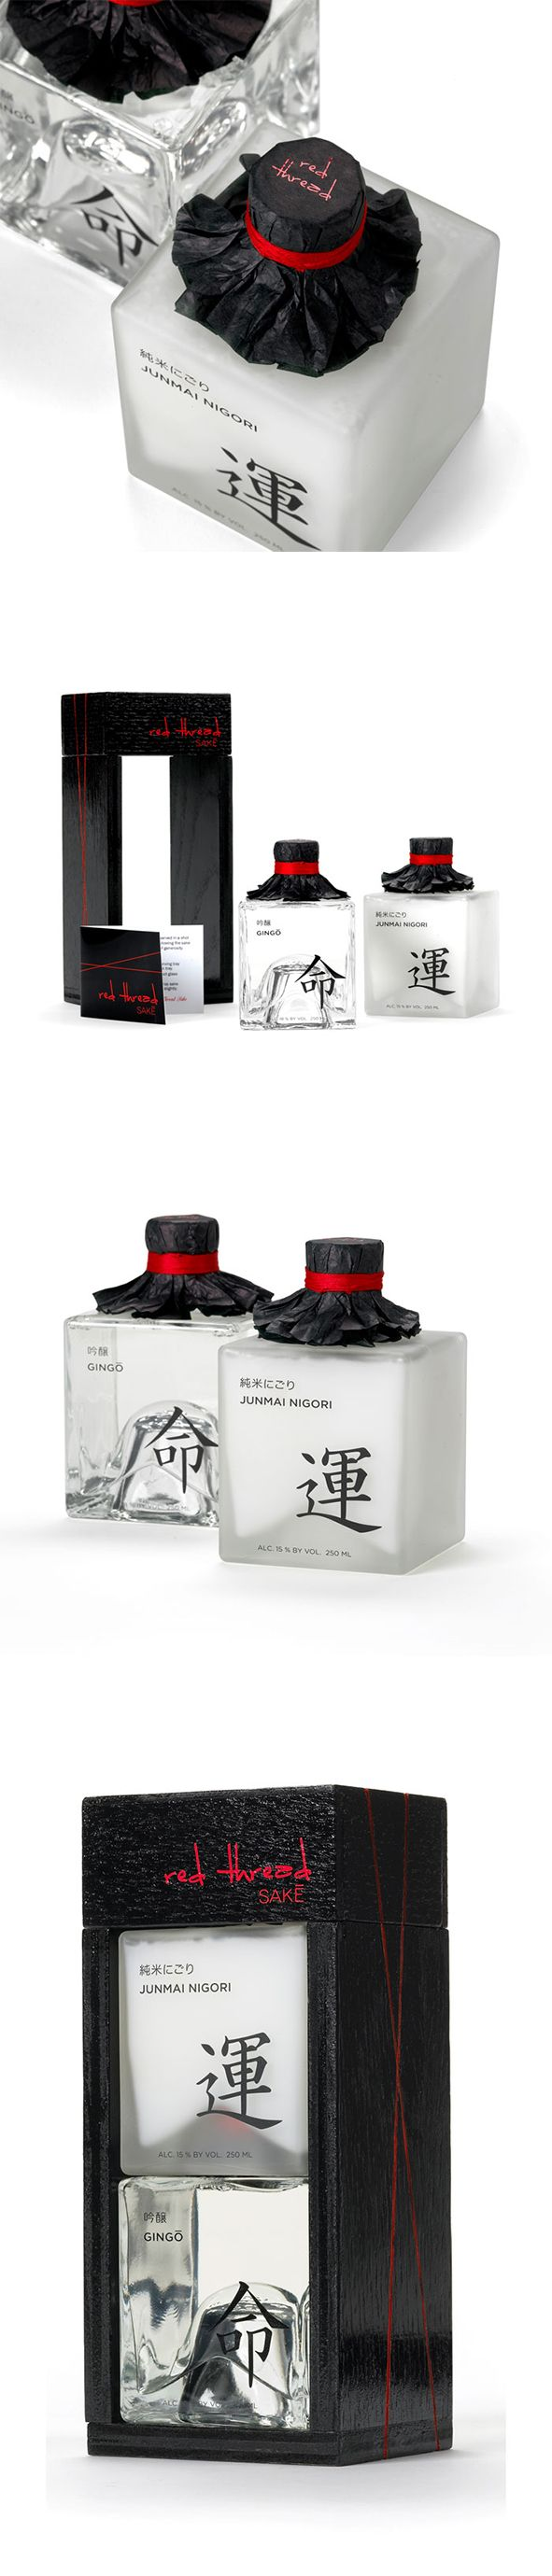 I think this Red Thread Sake packaging solution is absolutely stunning, especially the frosted glass design.